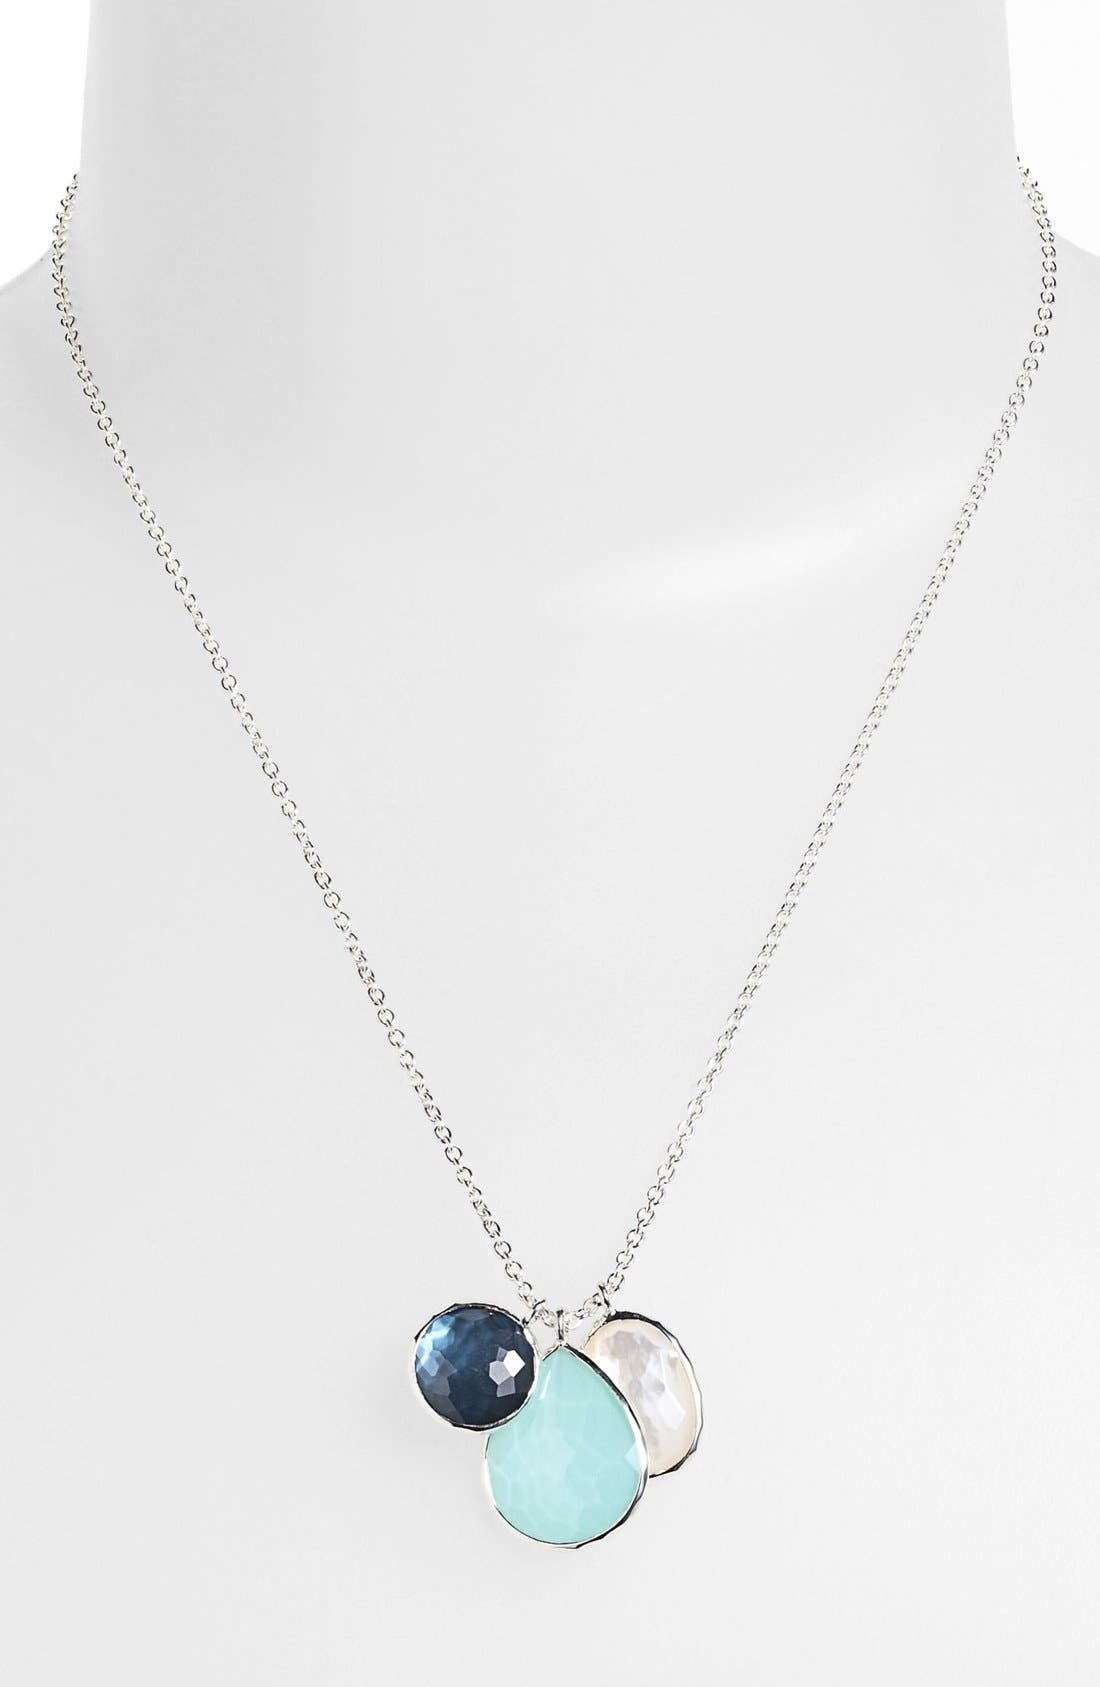 Alternate Image 1 Selected - Ippolita 'Wonderland' Triple Charm Necklace